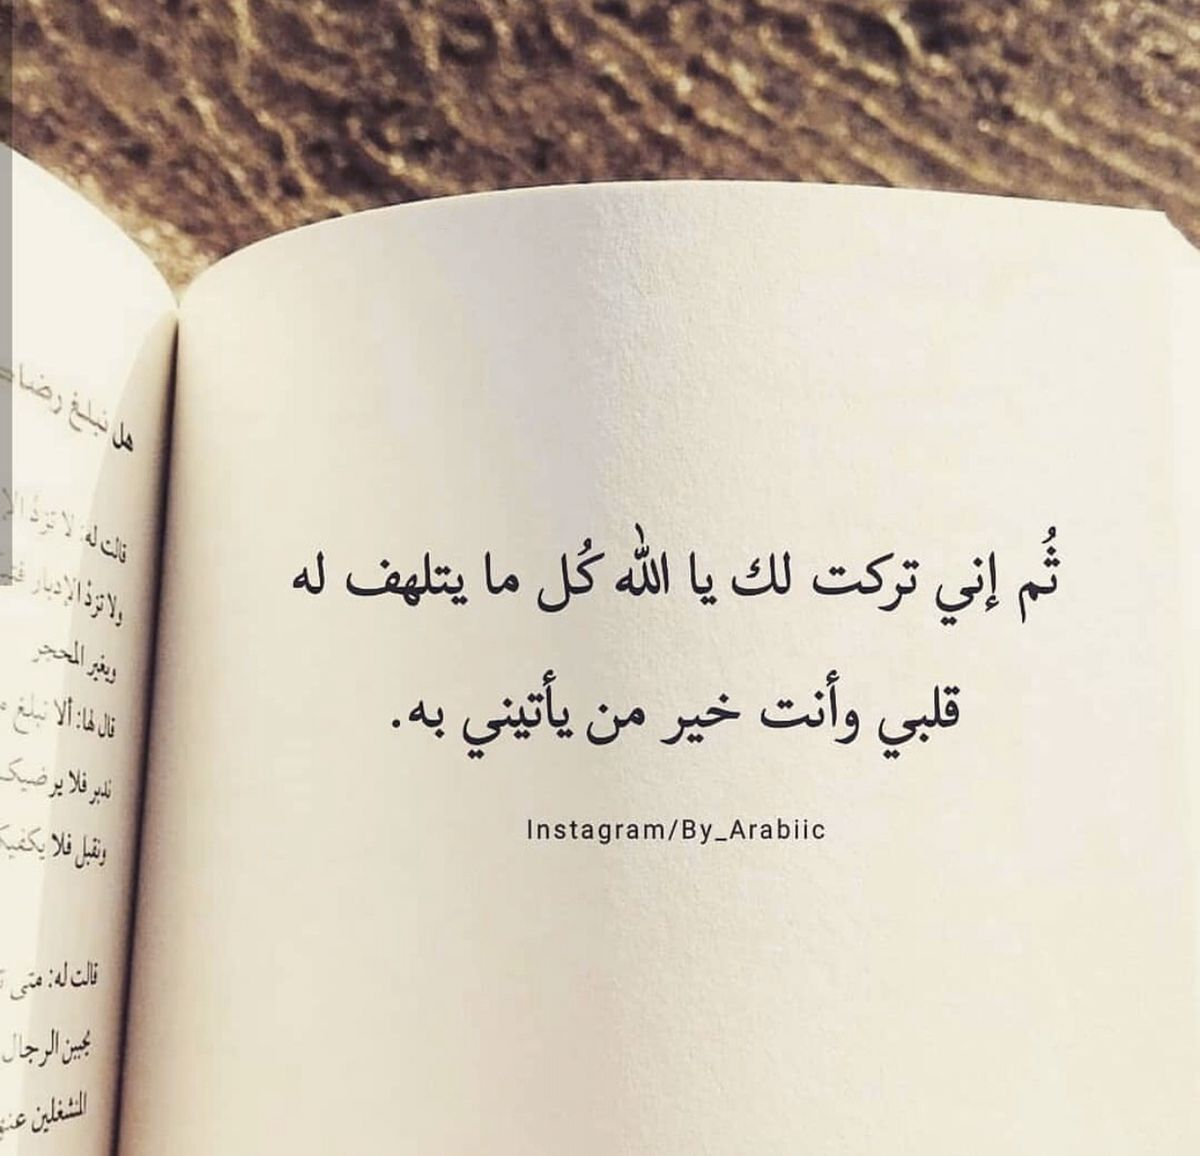 Pin By Wego On كل متوقع آت Arabic Quotes Tattoo Quotes Quotes